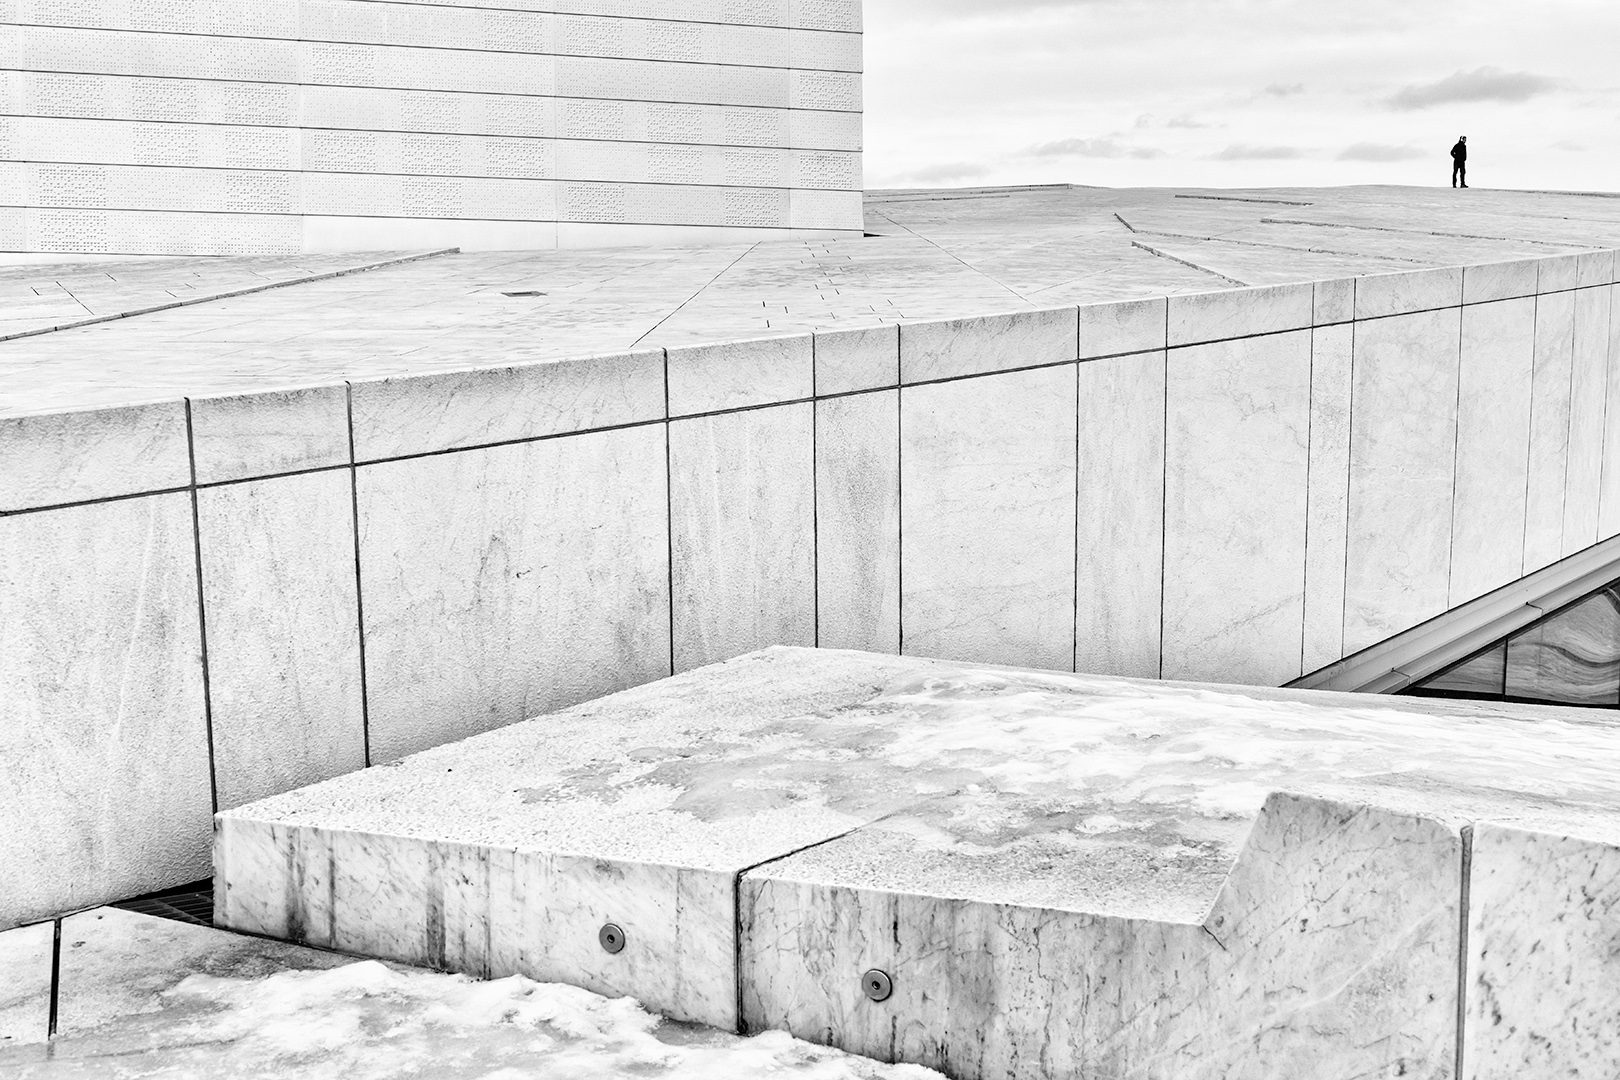 Alone on marble roof, Mats Grimfoot